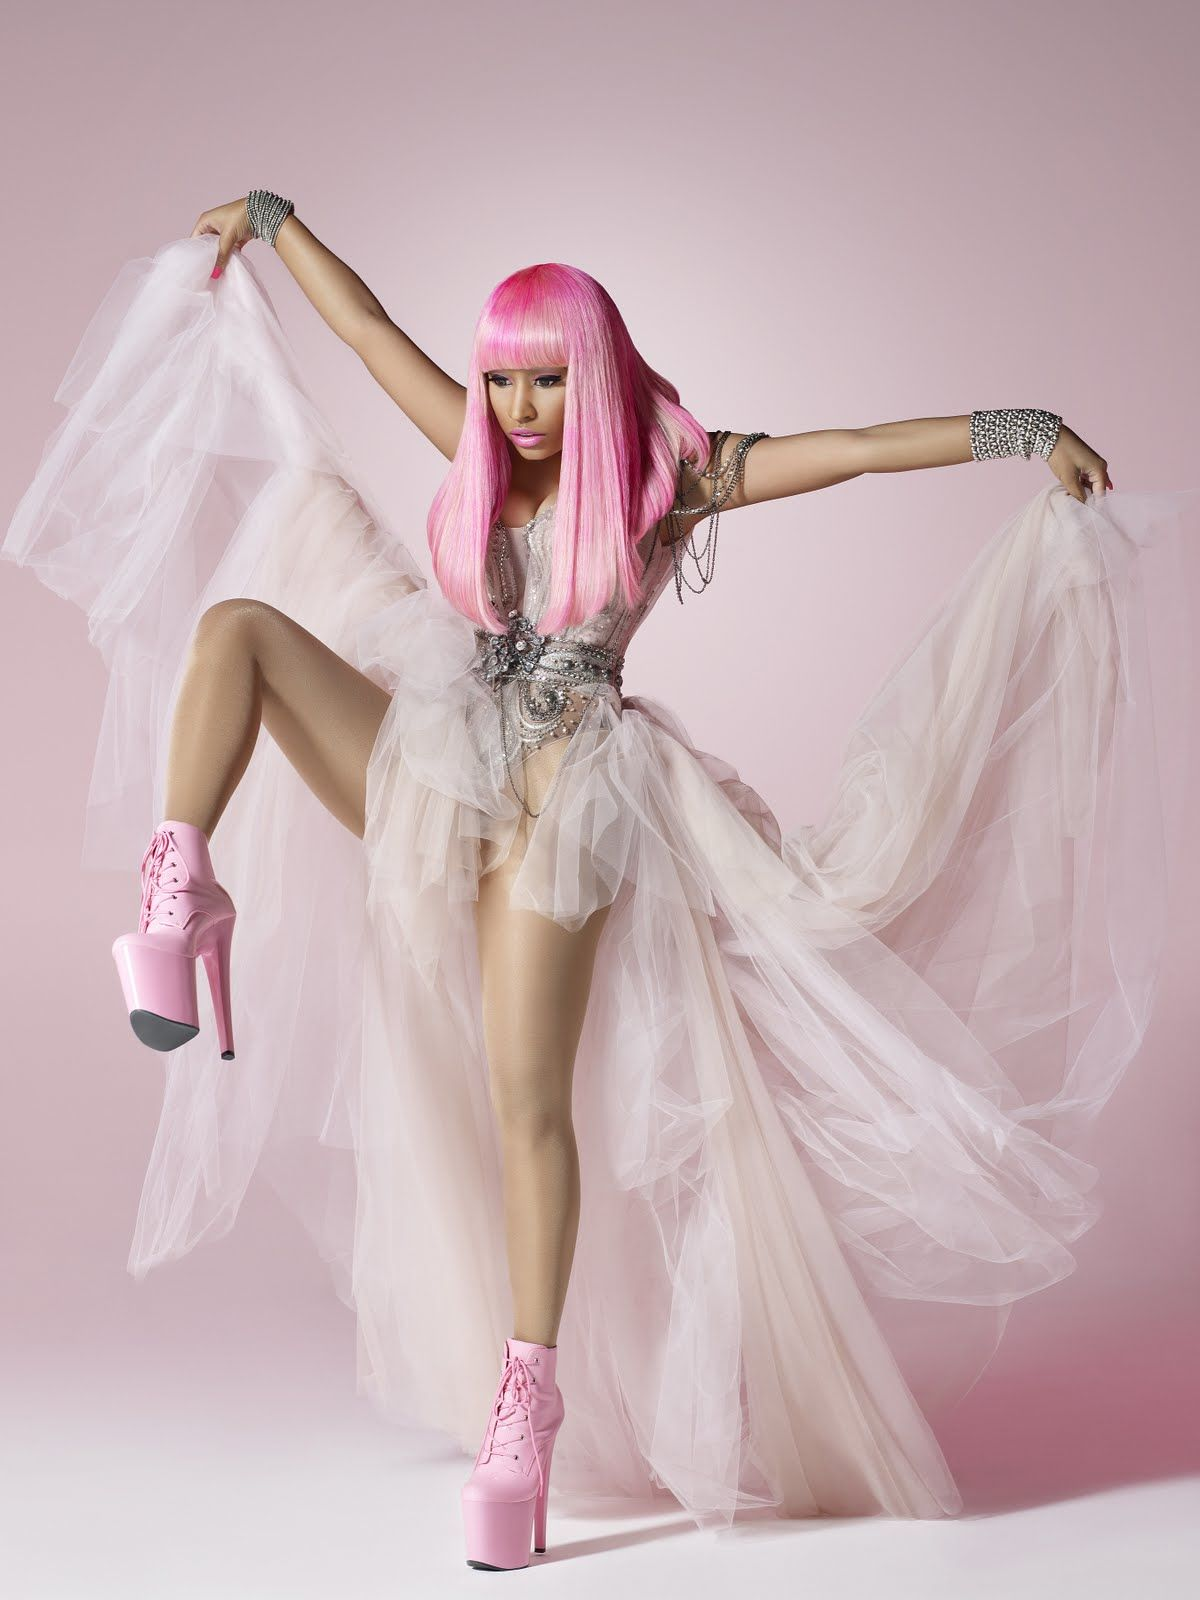 Nicki Minajs Pink Friday Album In Stores Now x Promo Photos